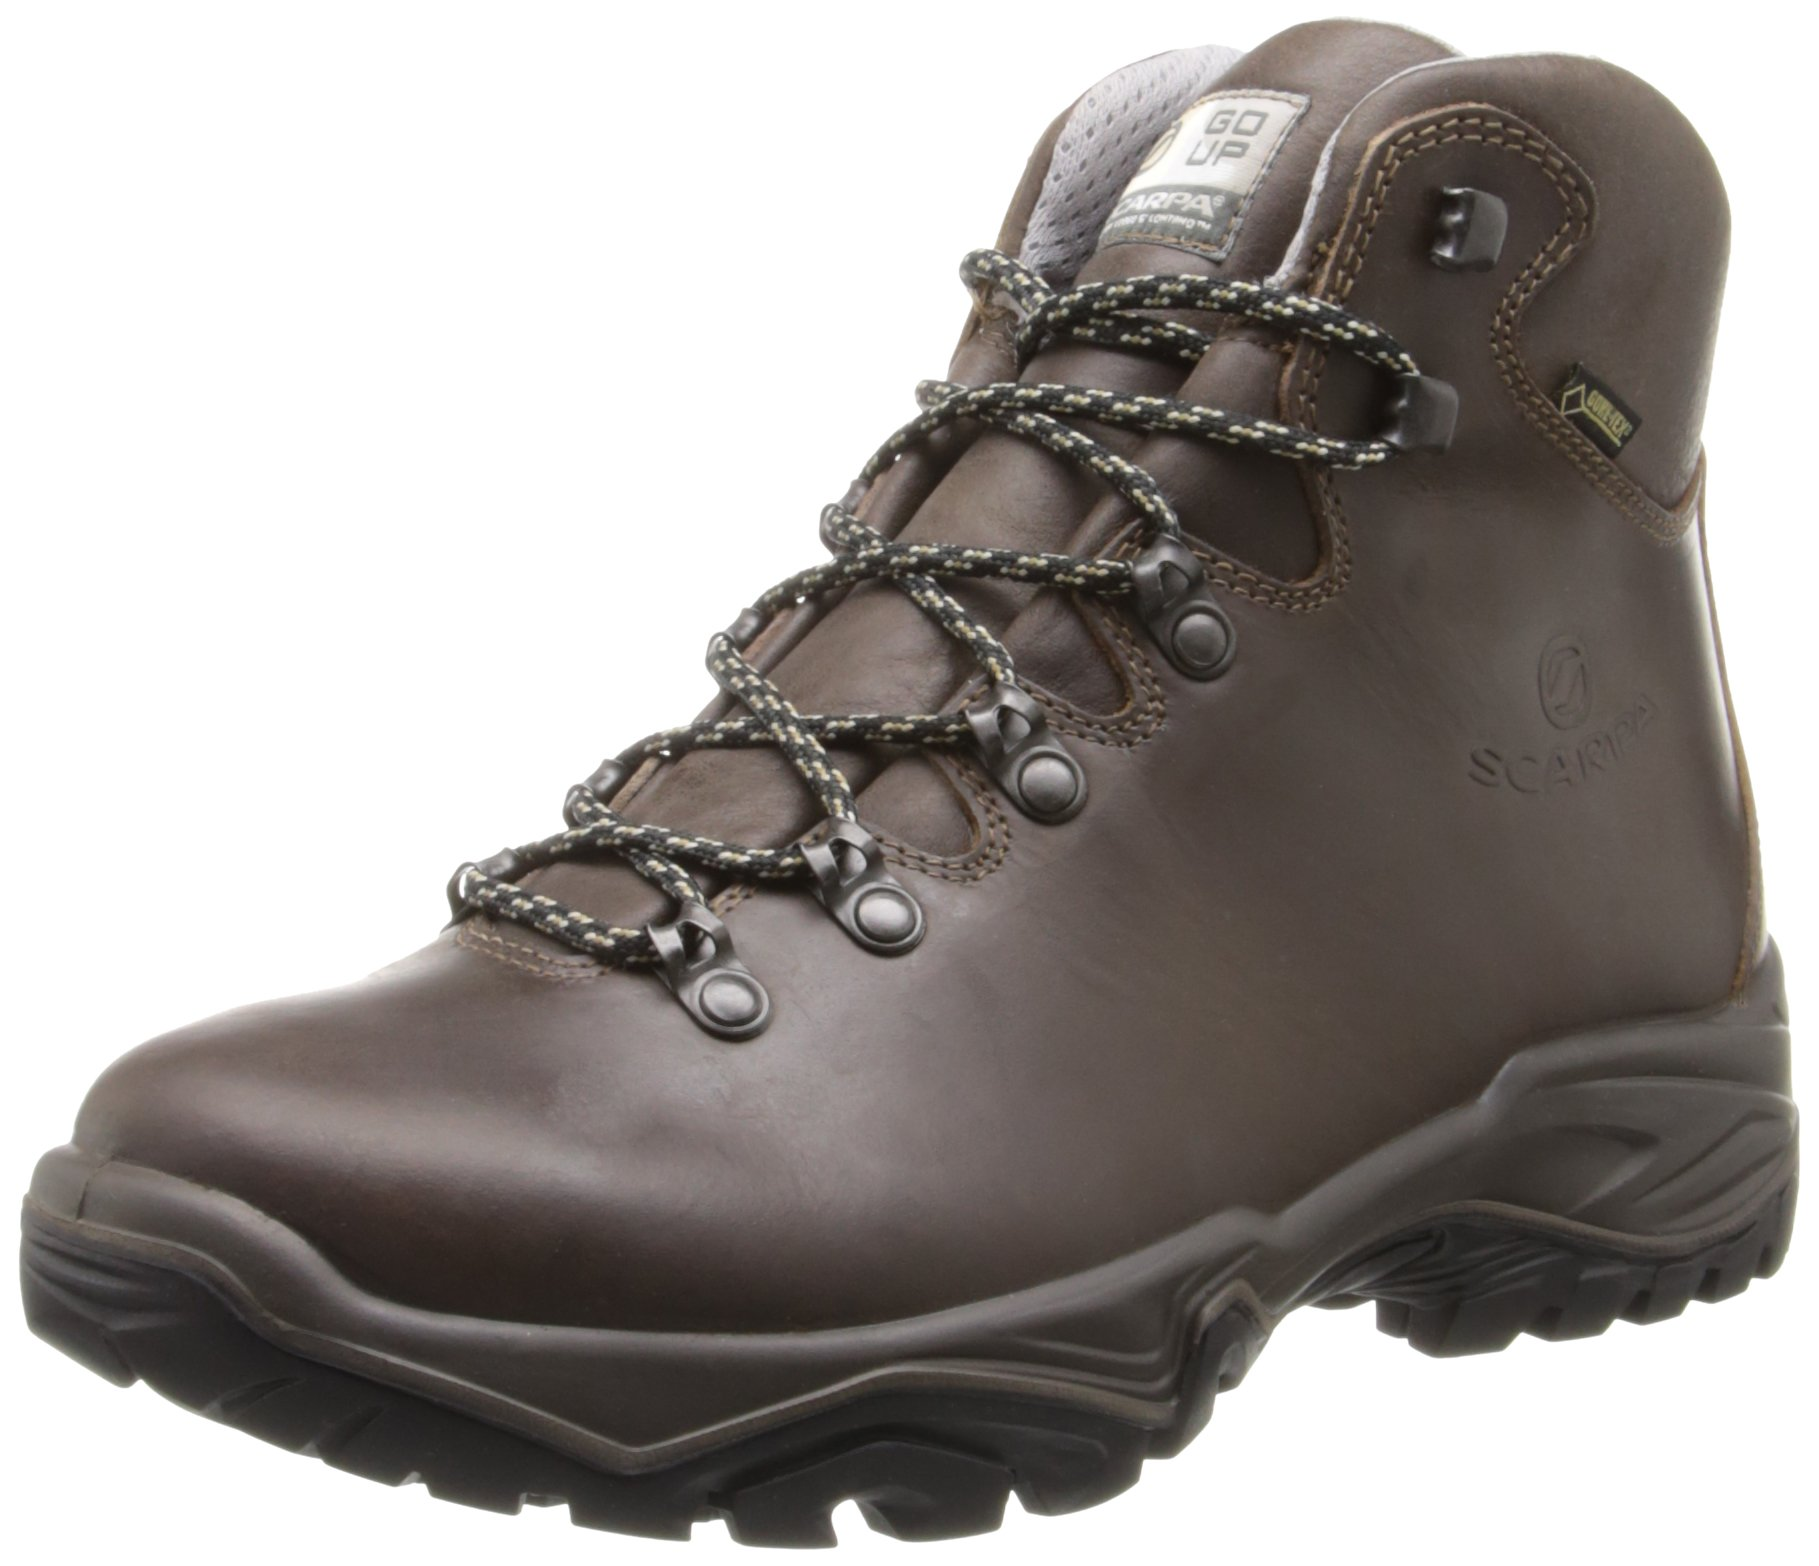 Scarpa Womens Women's Terra GTX Hiking Boot,Brown,38 EU/7 M US